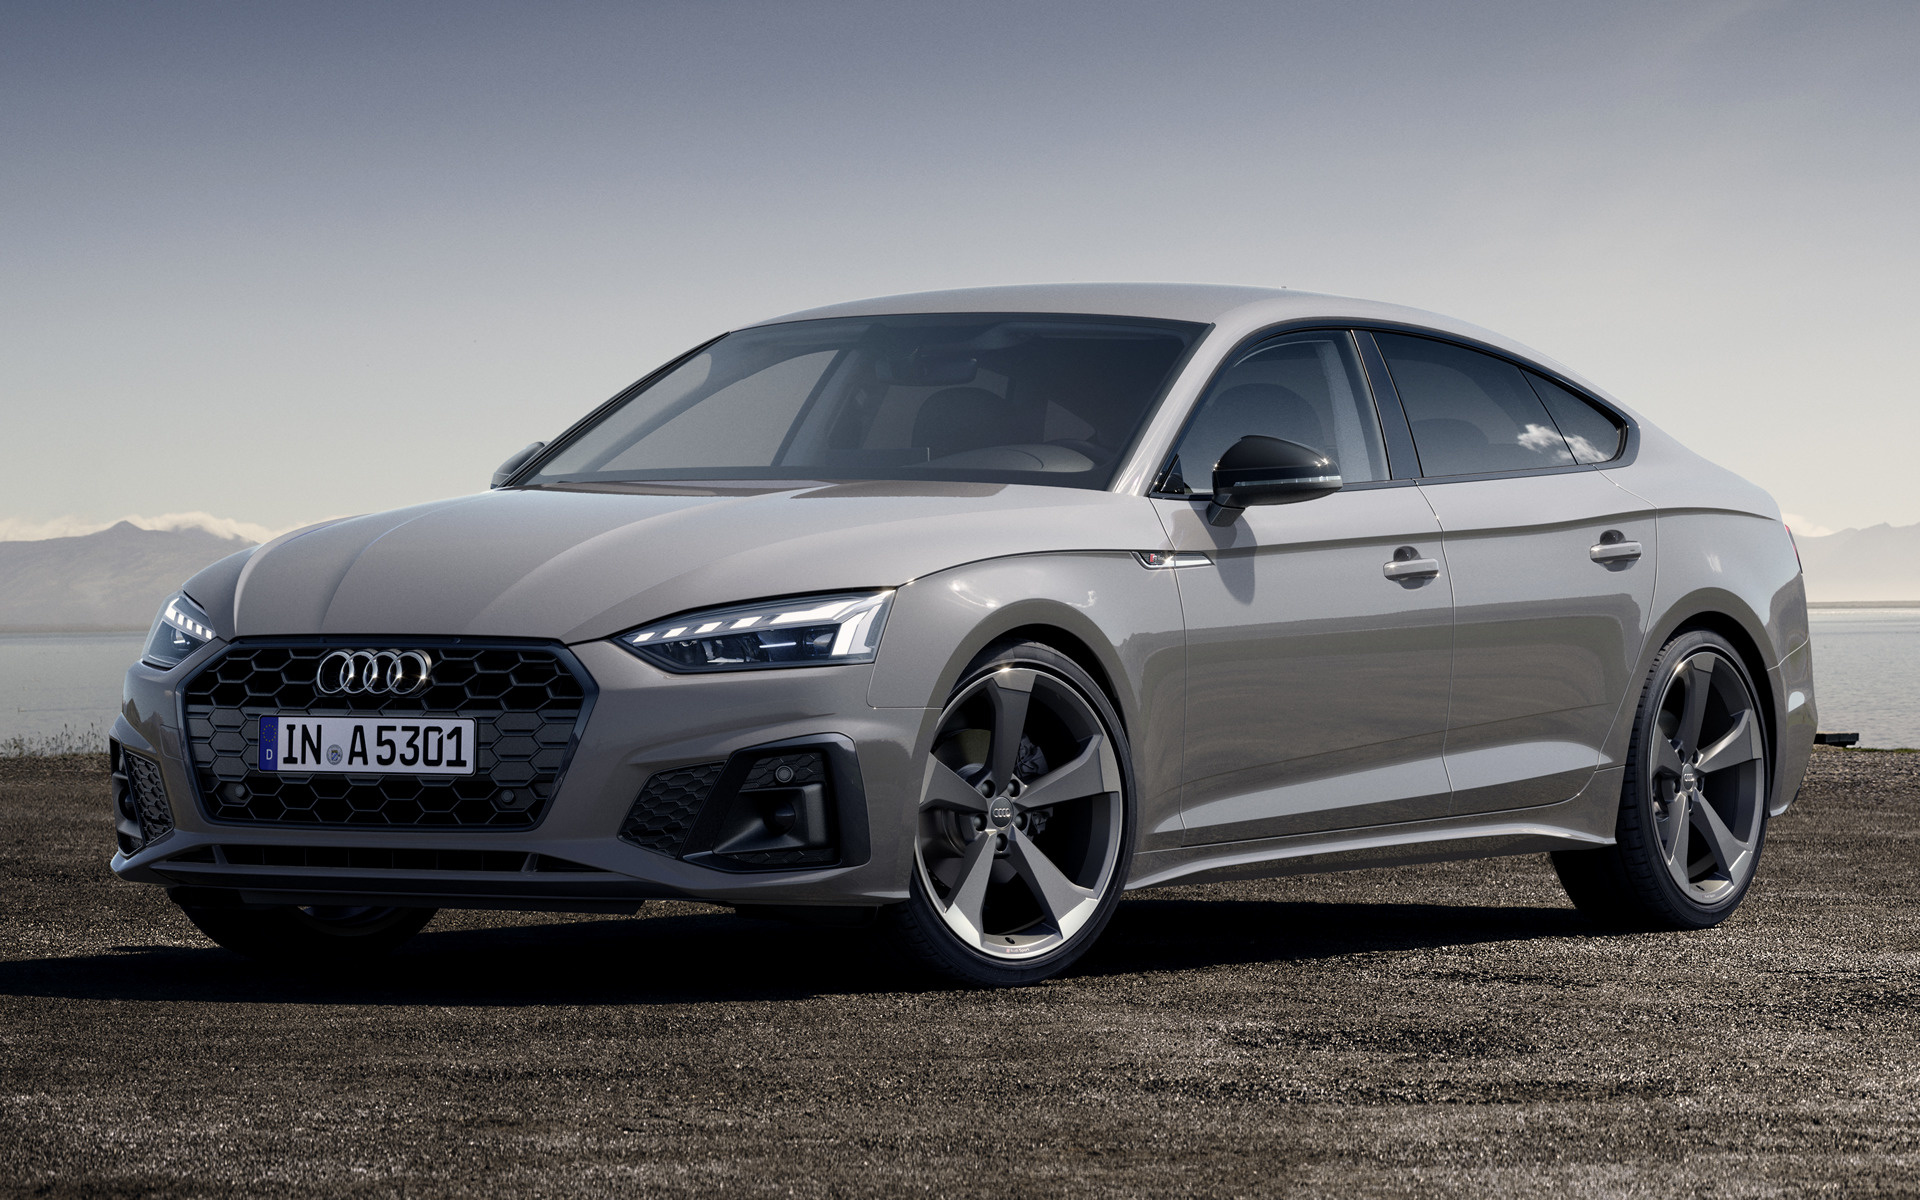 2020 Audi A5 Sportback S line - Wallpapers and HD Images ...